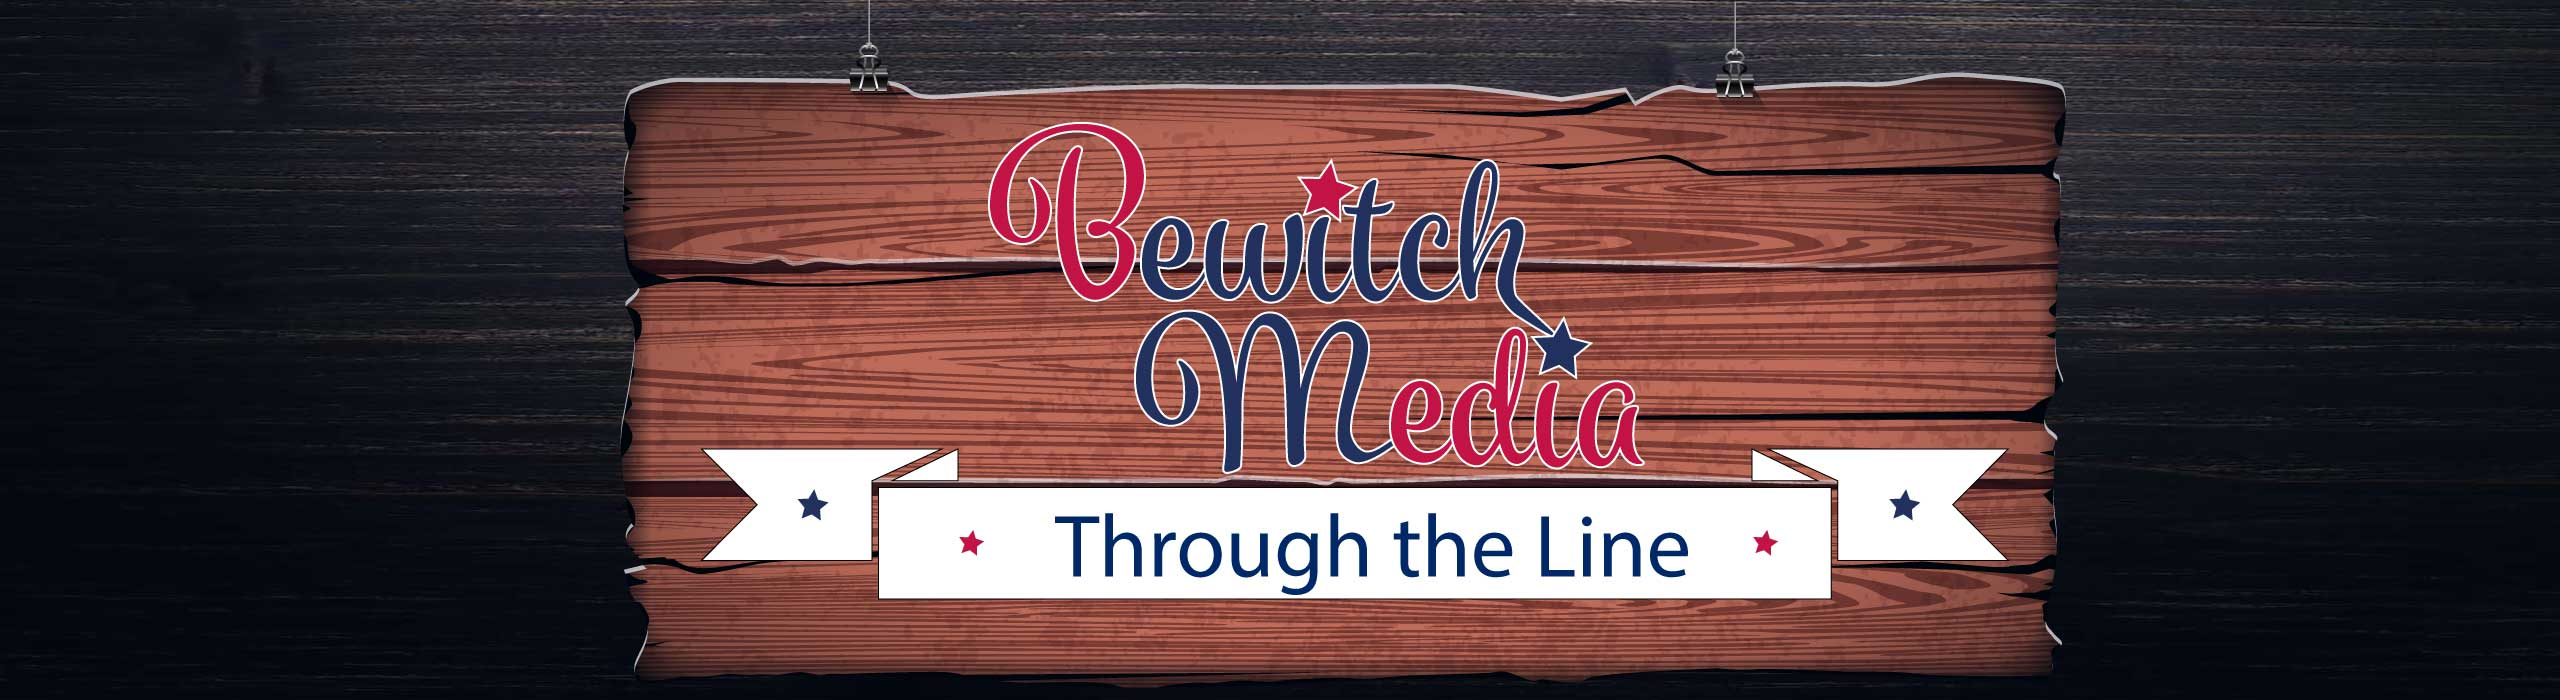 Through-the-Line-Topbanner-Bewitch-Media